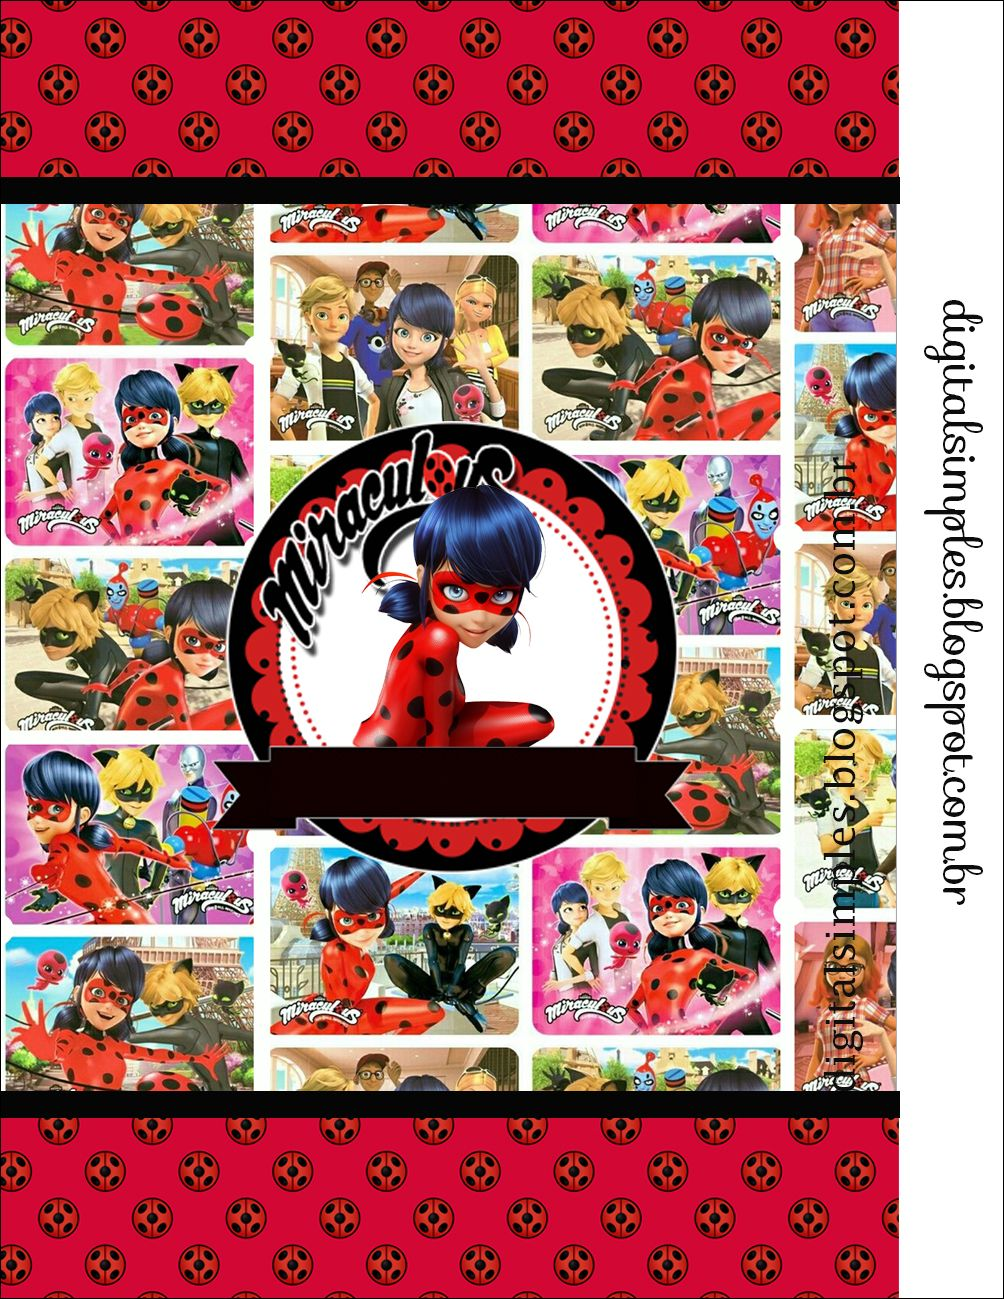 Miraculous As Aventuras De Ladybug E Cat Noir Kit Digital Para